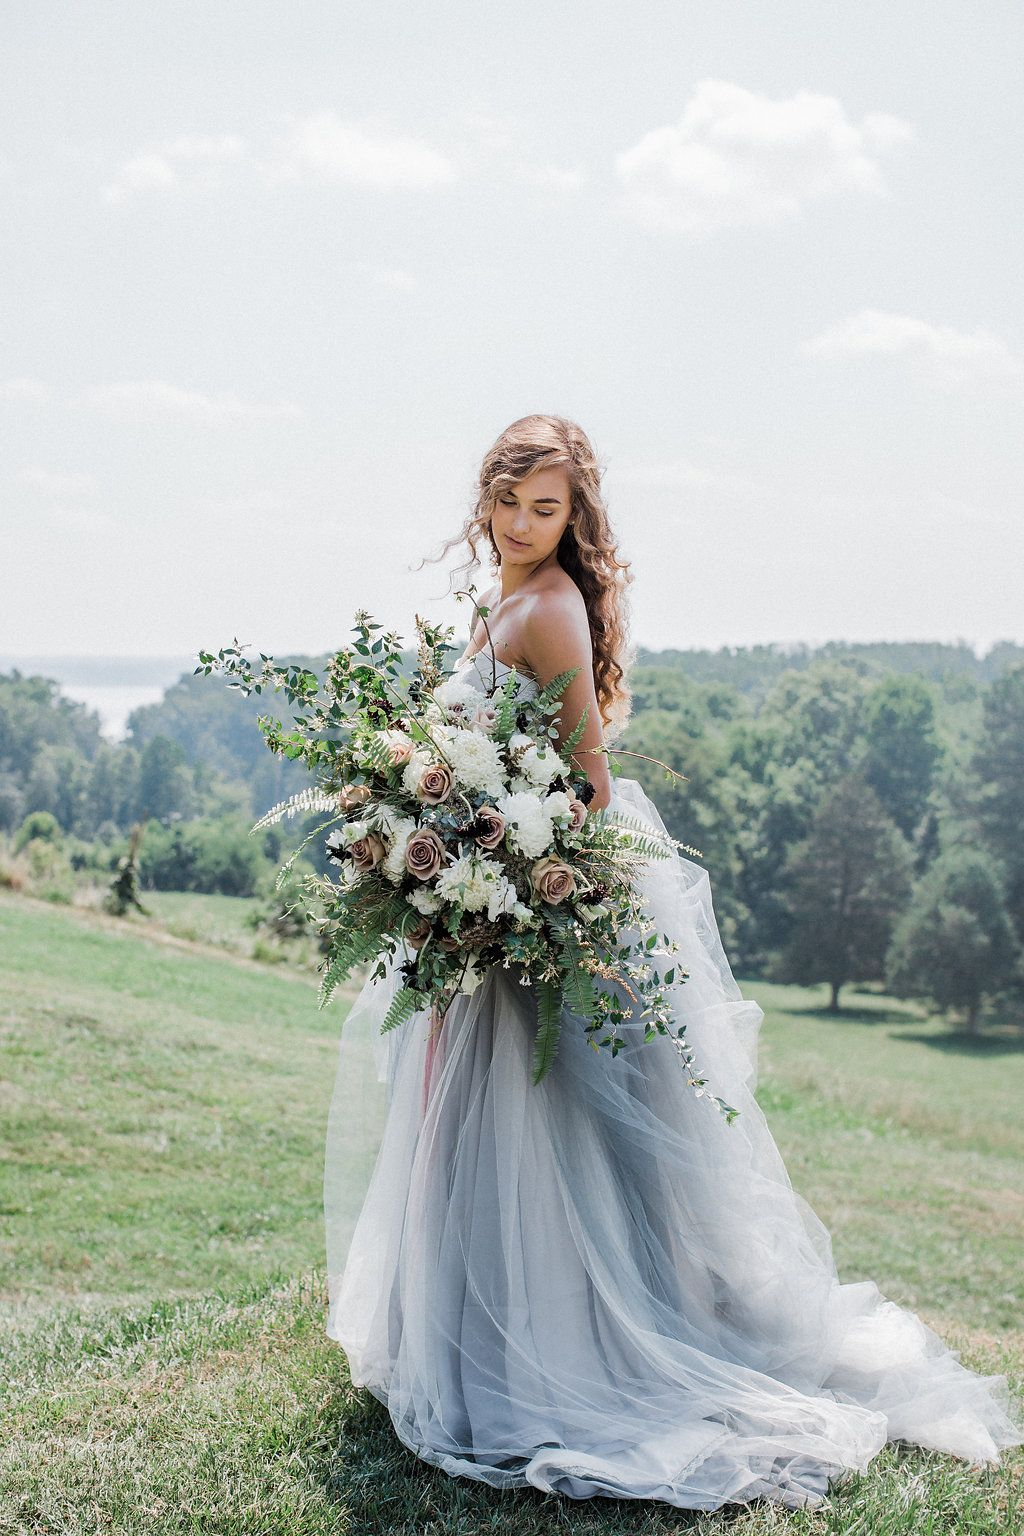 Beautiful oversized bridal bouquet and an exquisite gray wedding